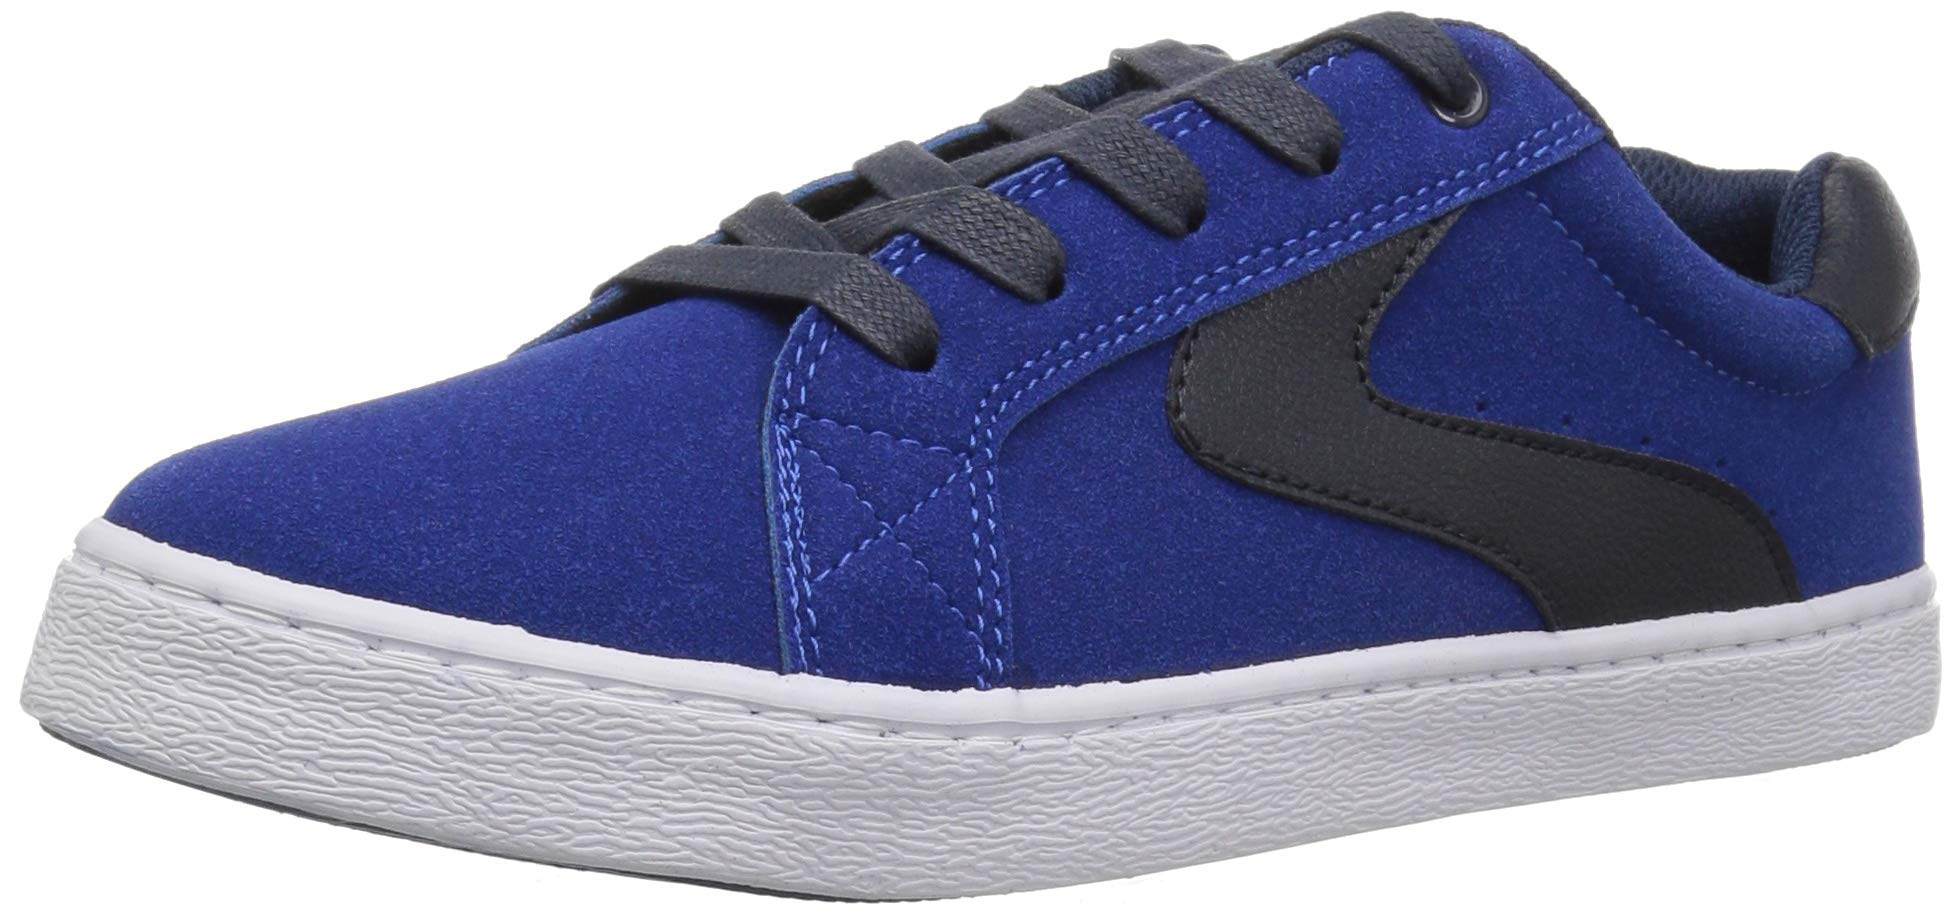 The Children's Place Boys' Low Top Sneaker, Mazarine Blue, Youth 11 Child US Little Kid